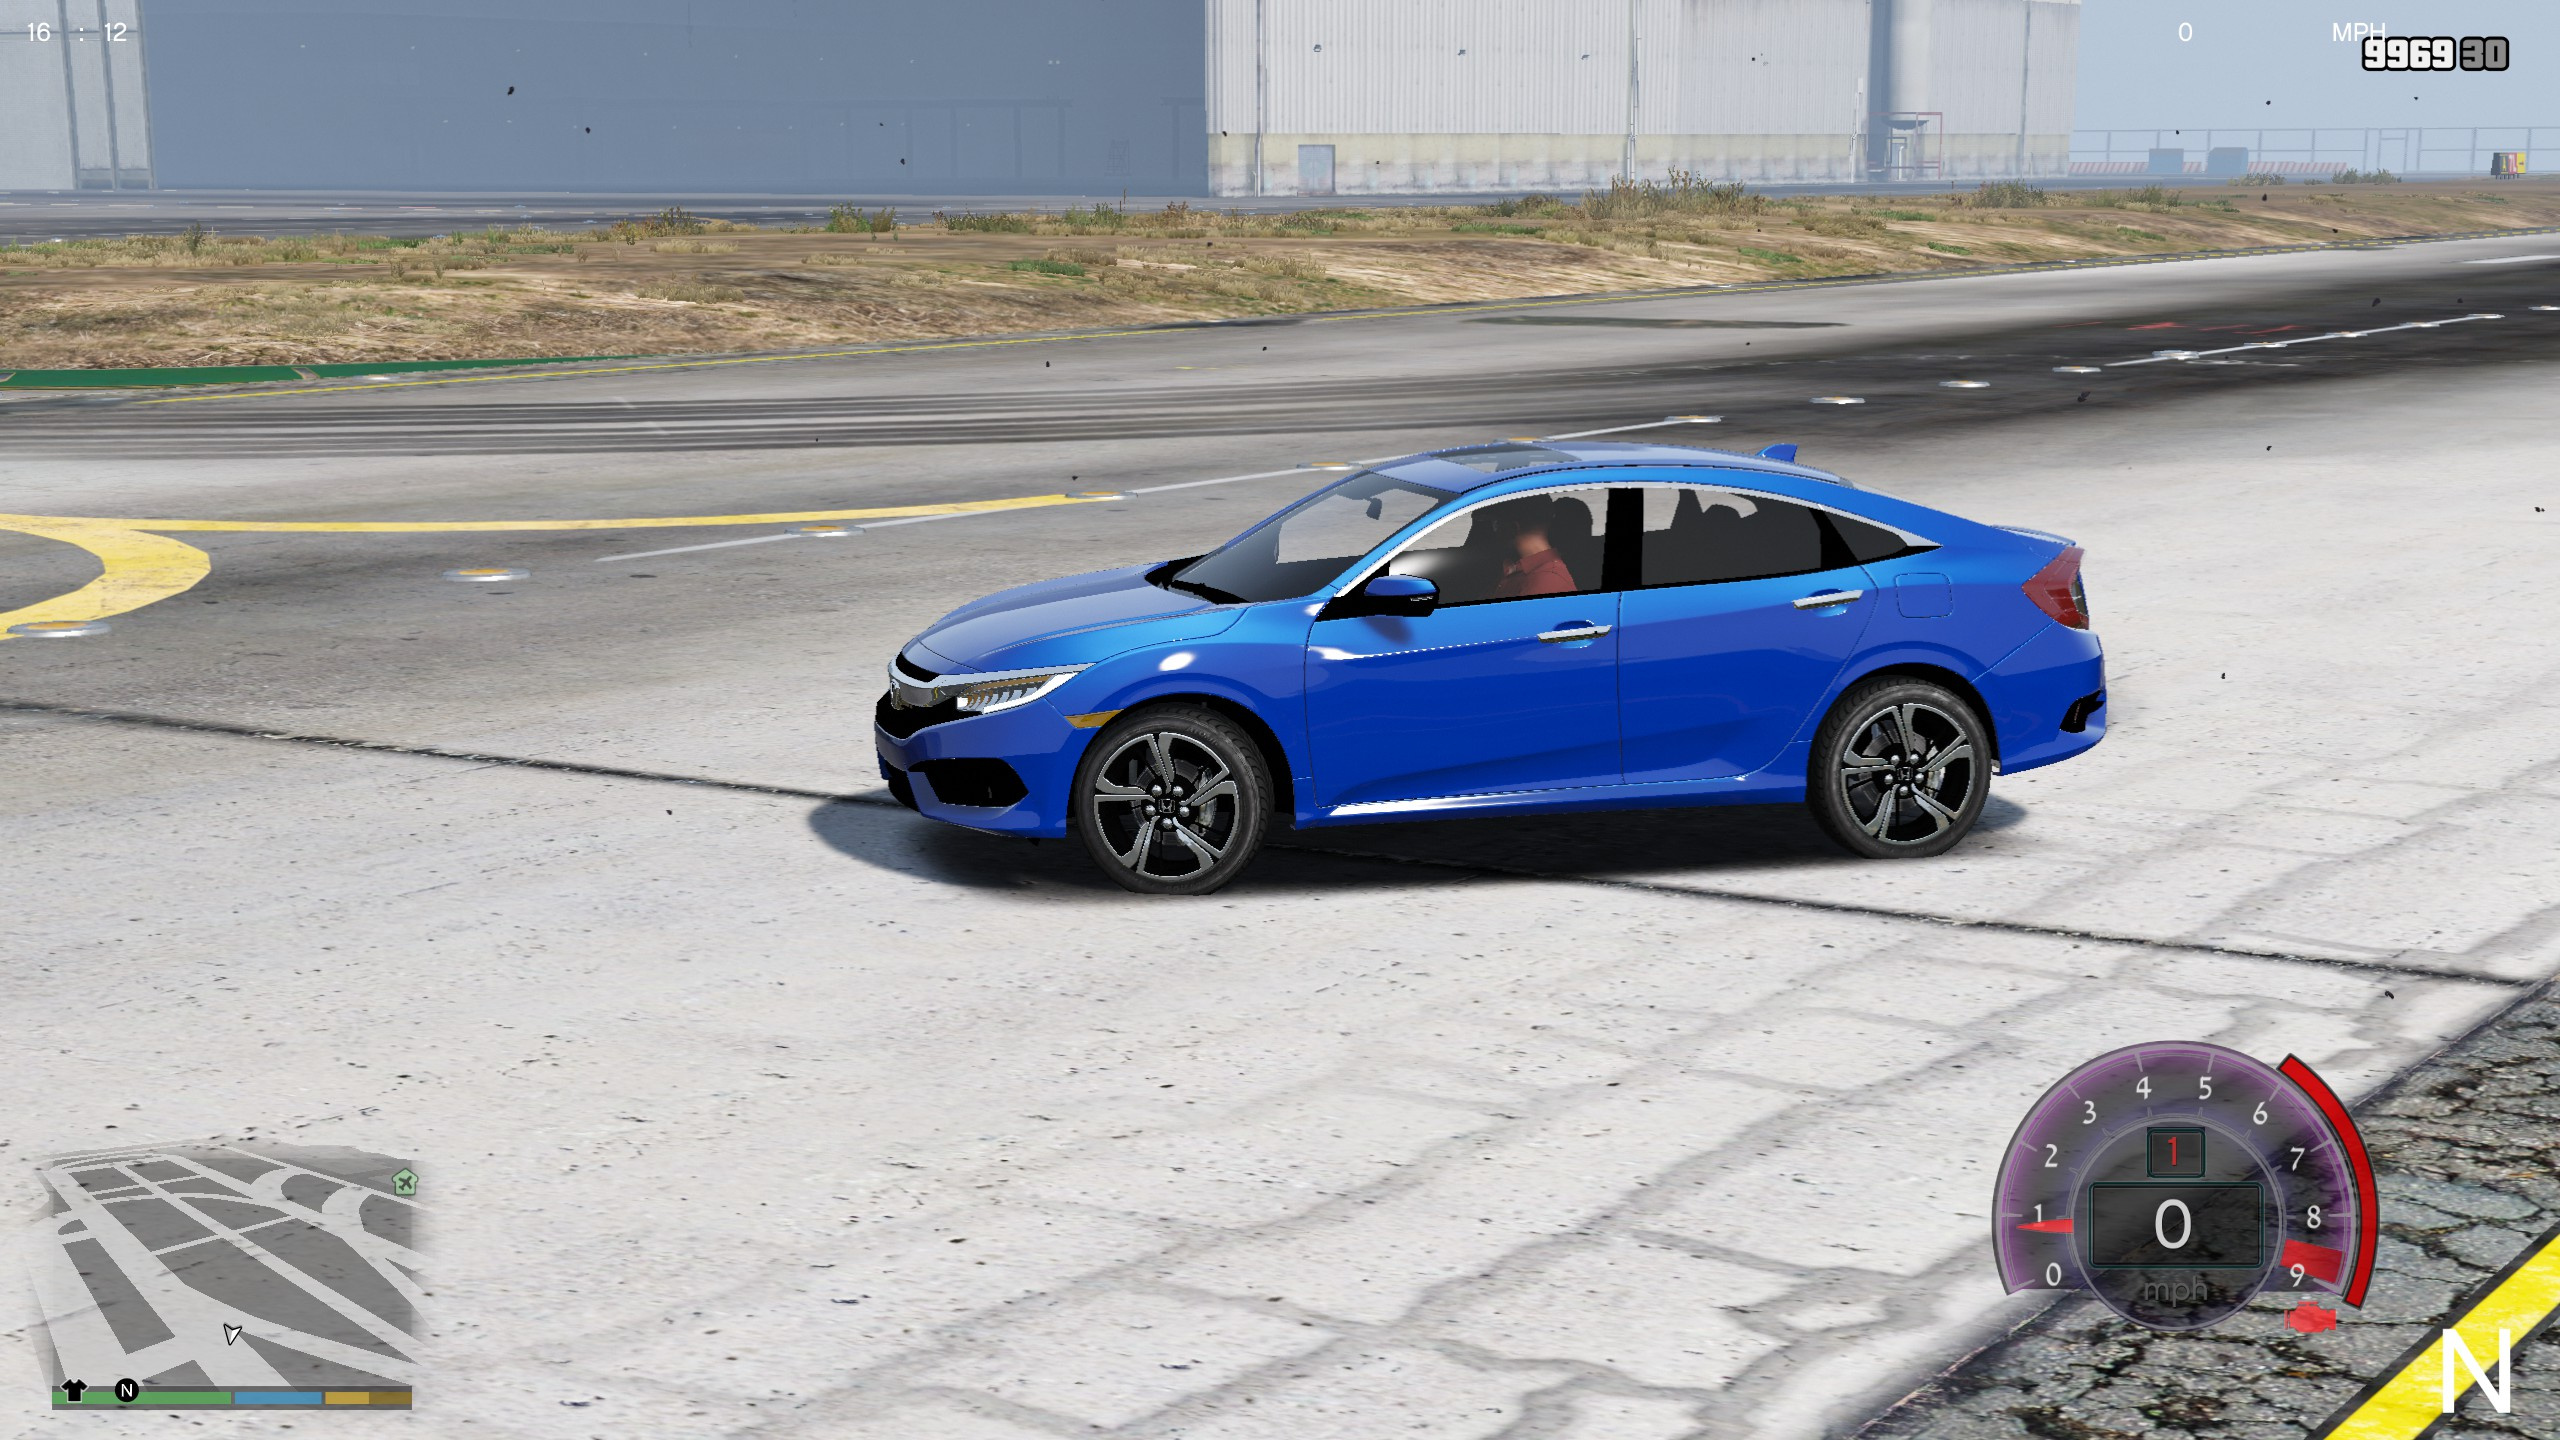 2017 Honda Civic Touring [Replace] GTA5 Mods